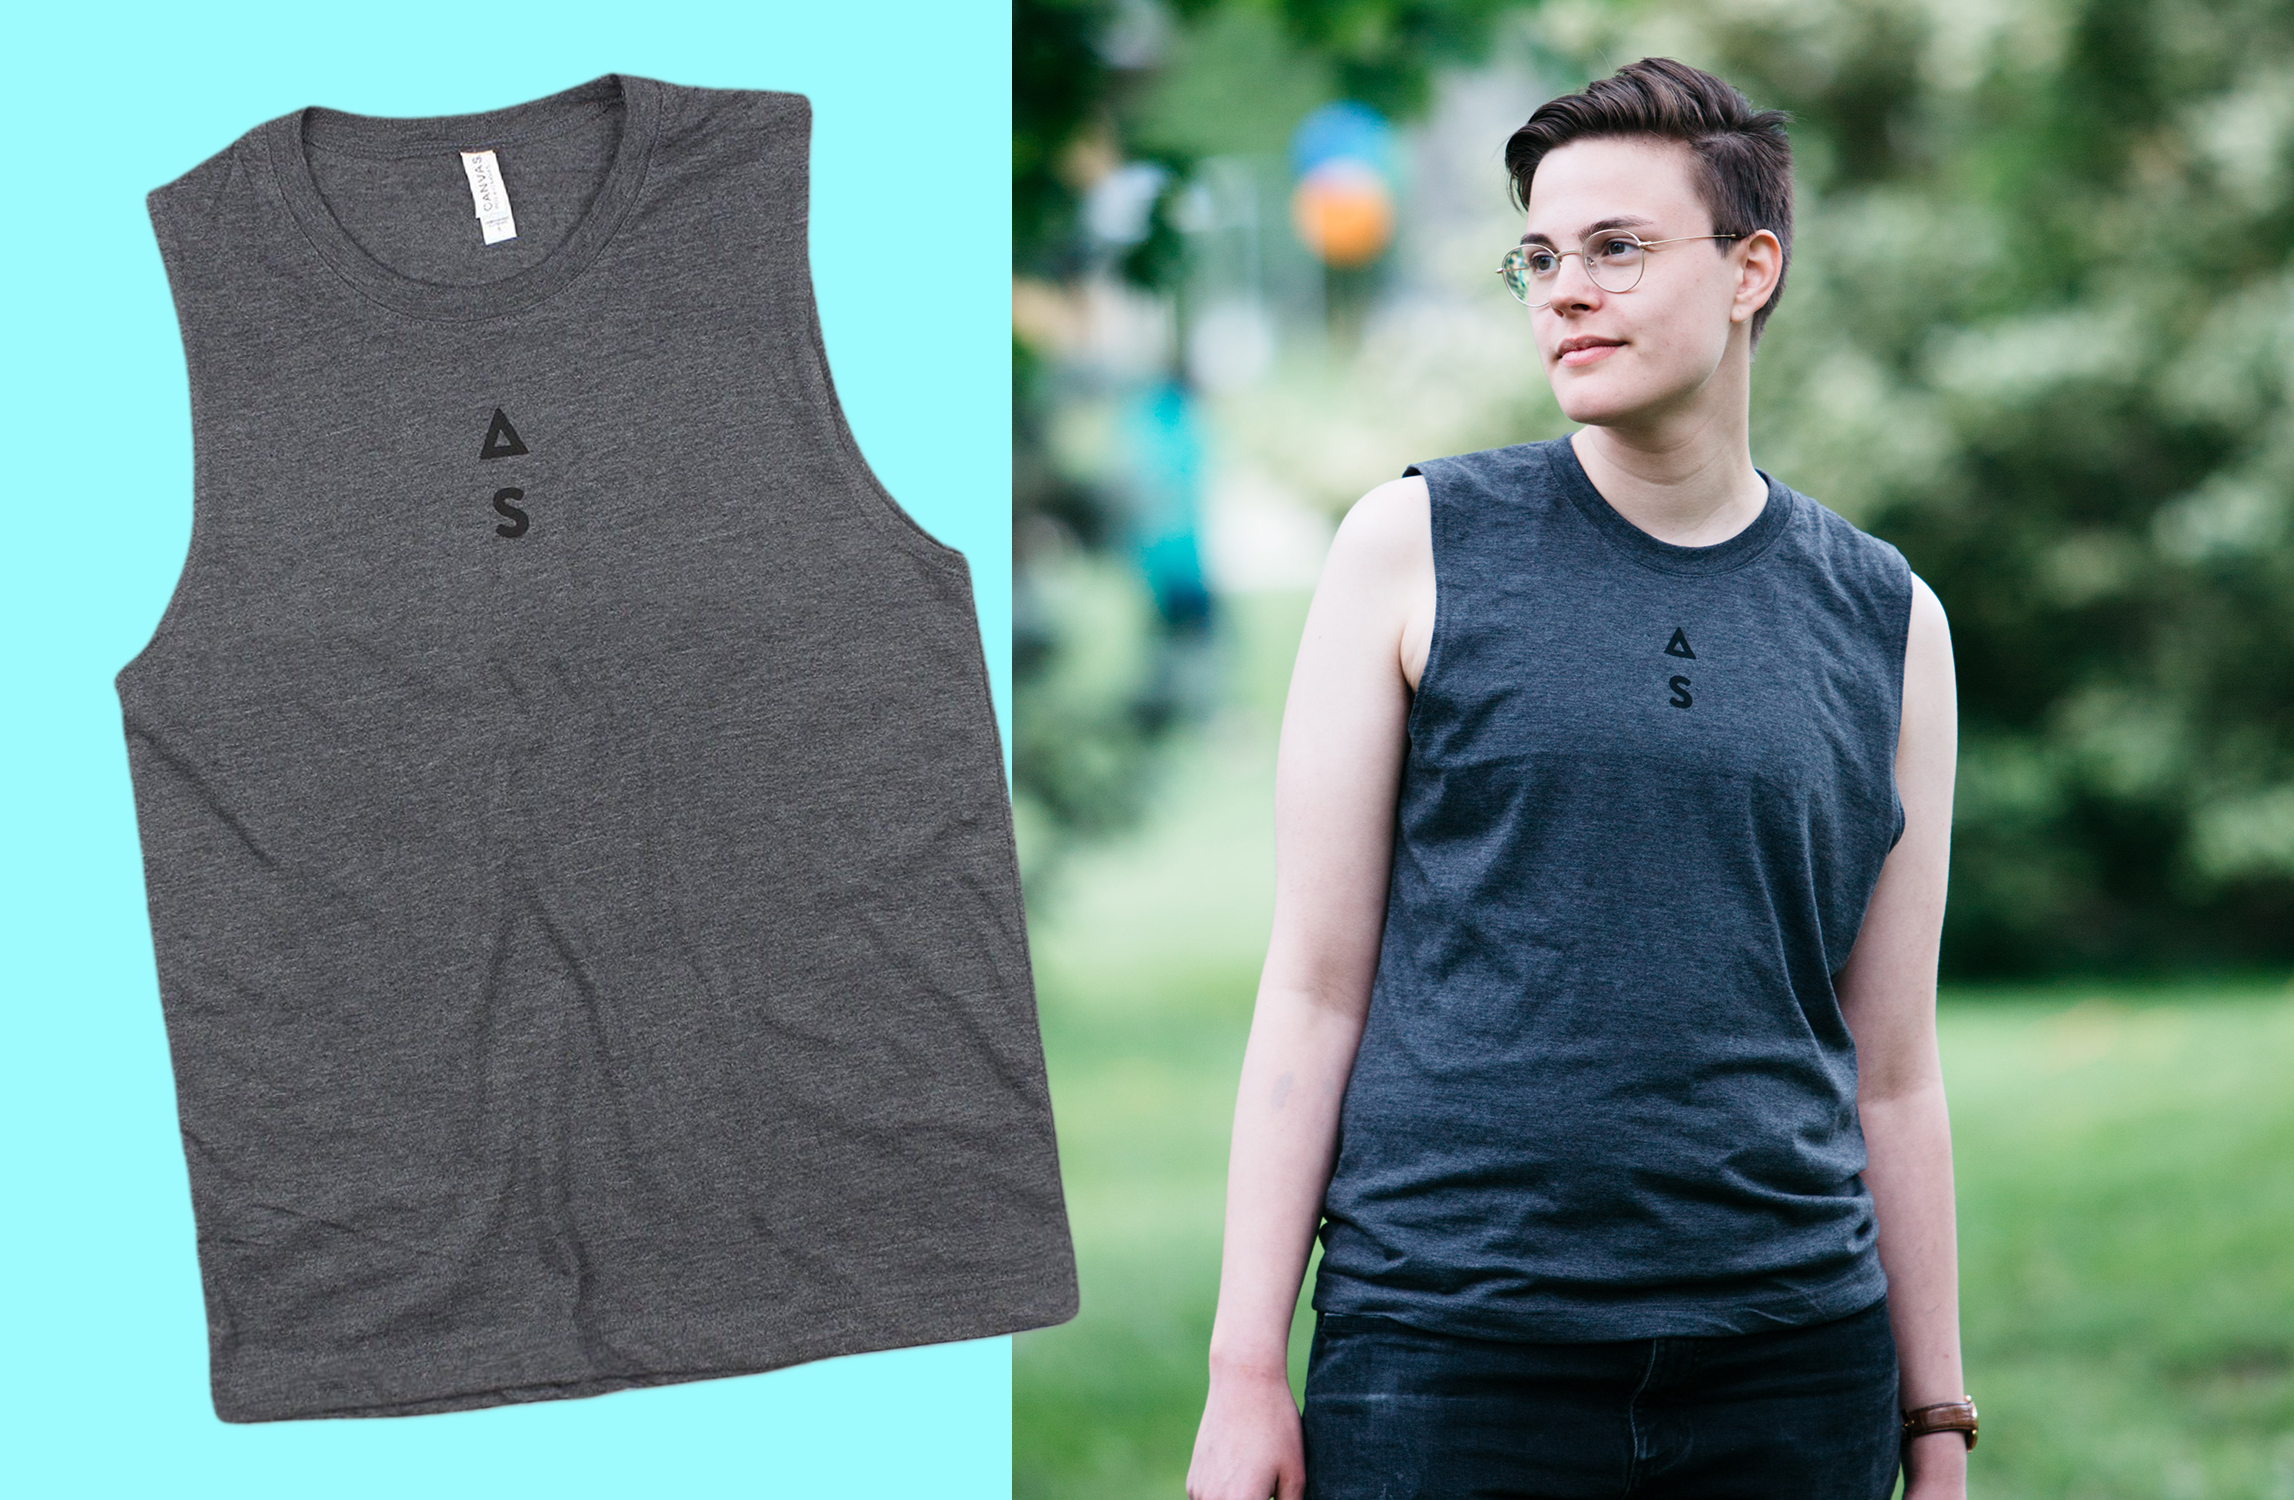 Left: Grey Unisex Muscle Tank with Autostraddle logo screen printed top-center, just below neckline. / Al wearing Autostraddle tank.